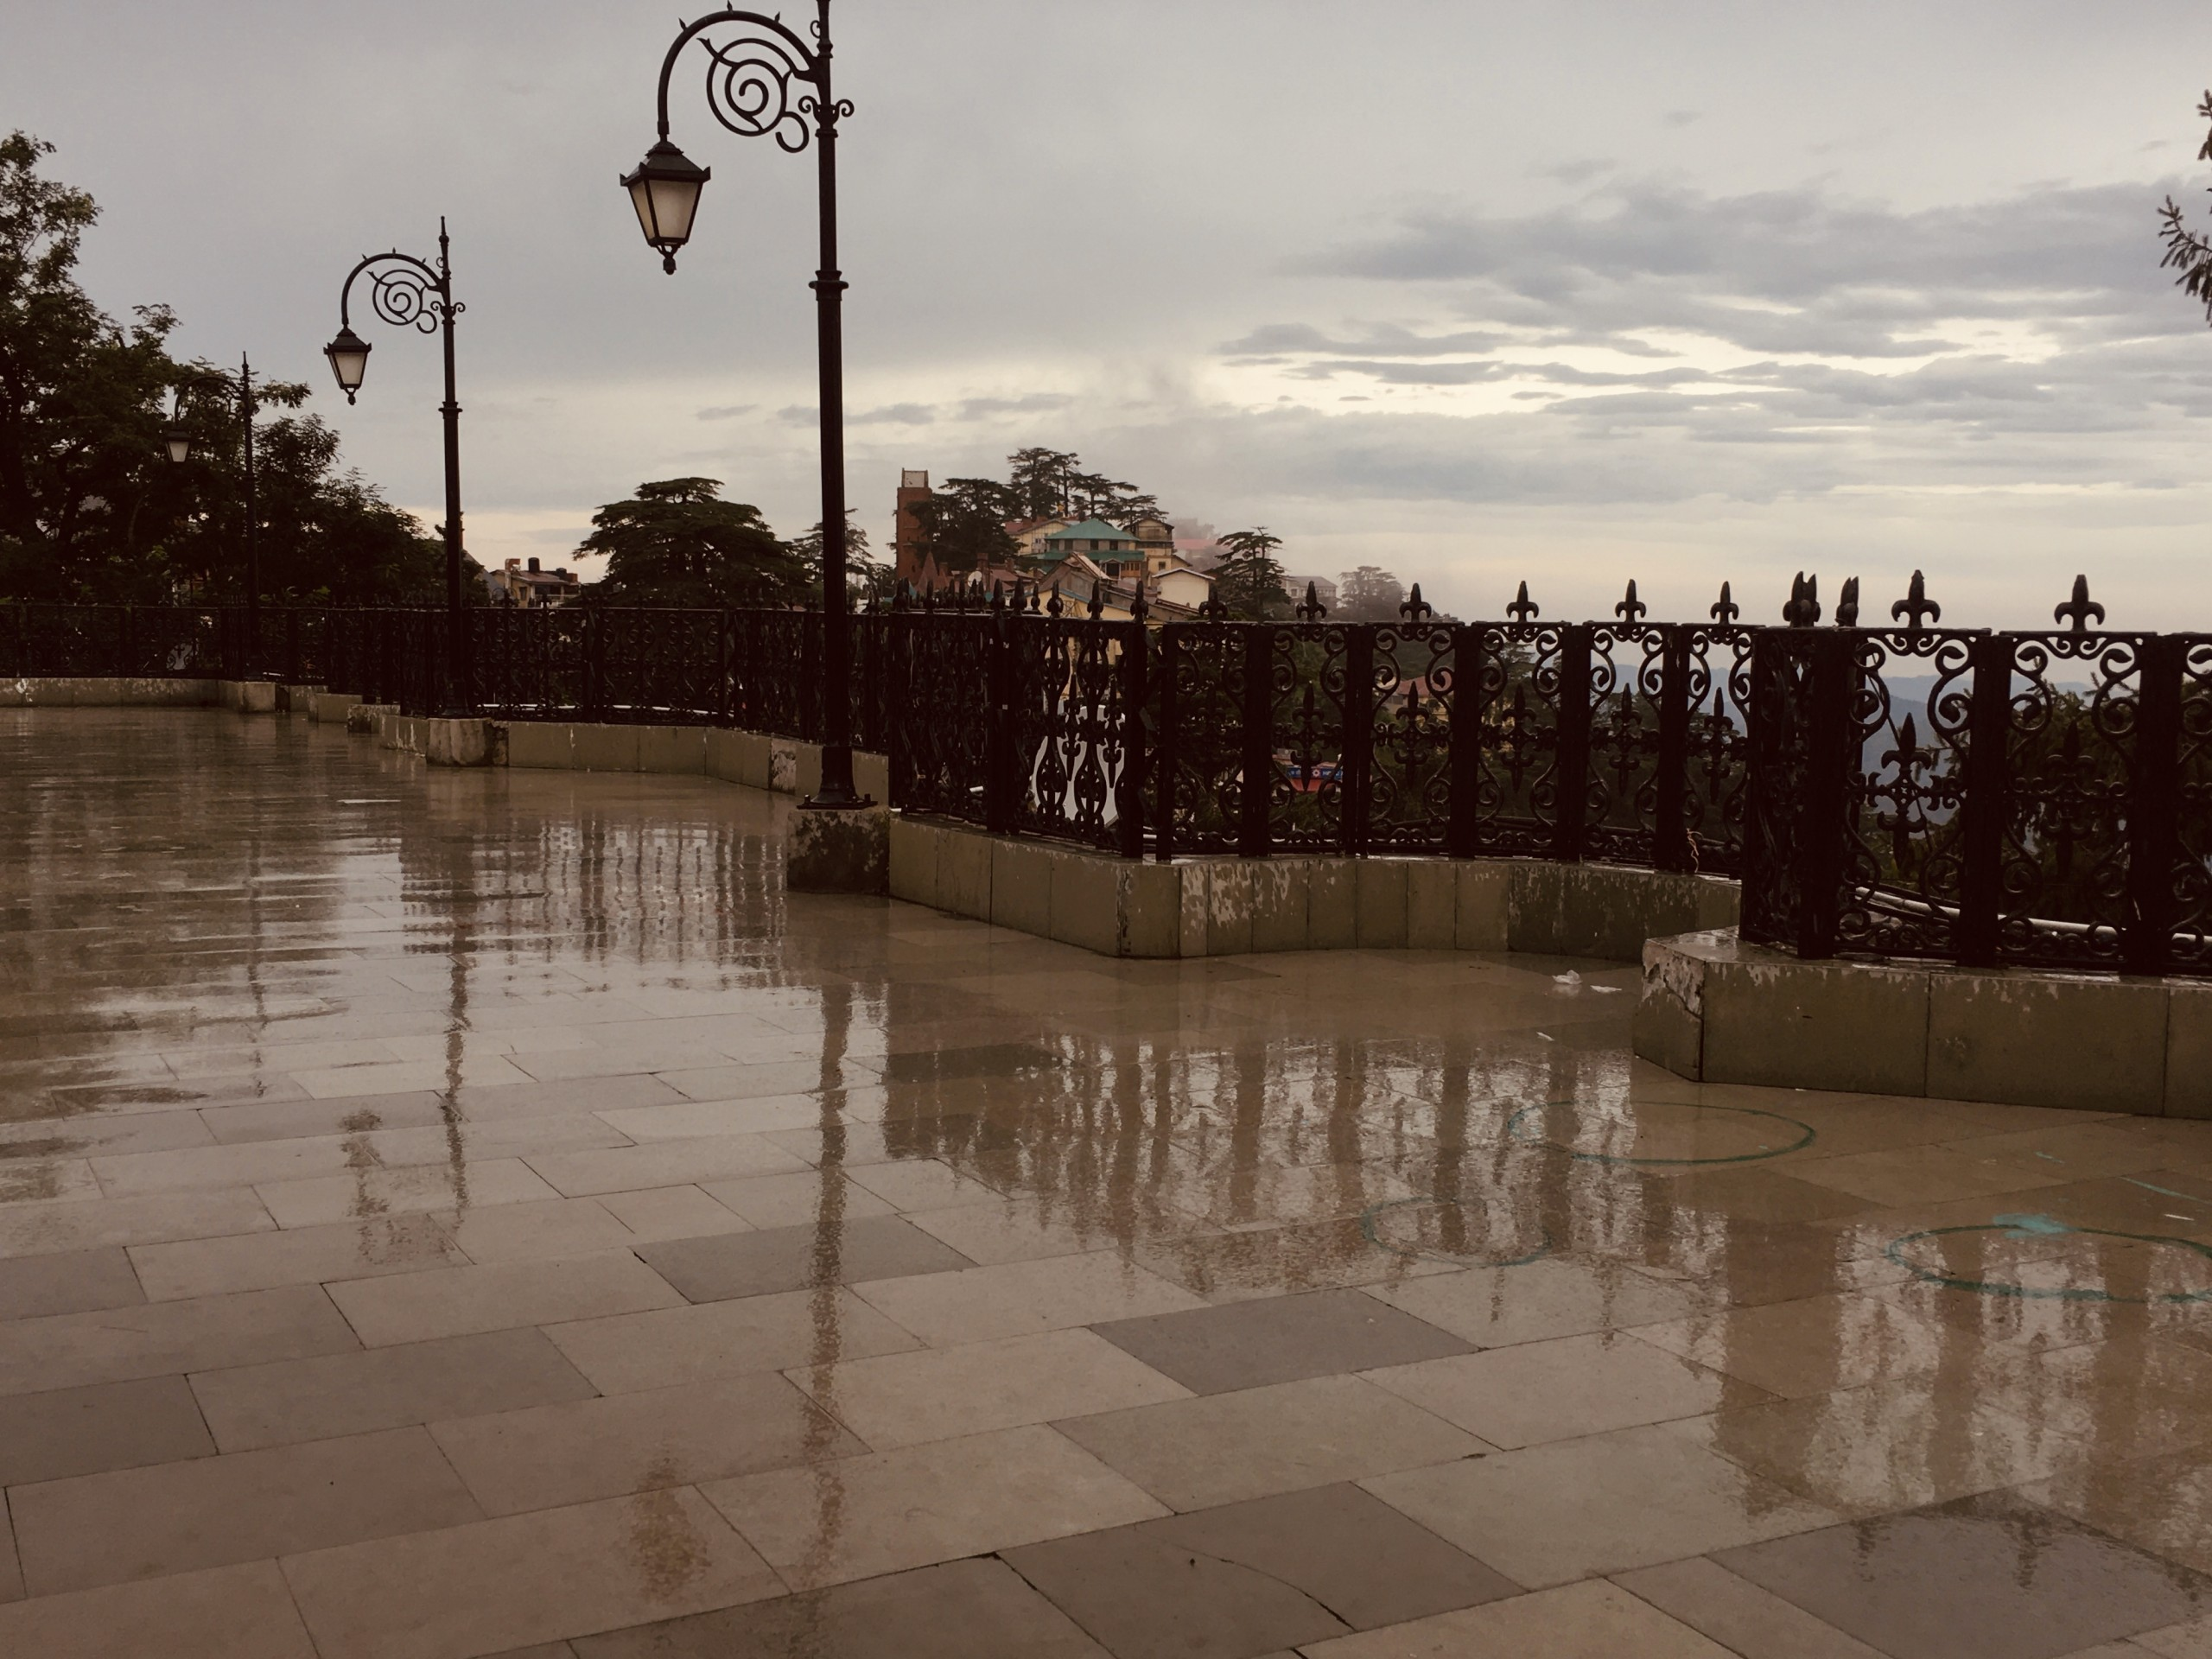 View after rain